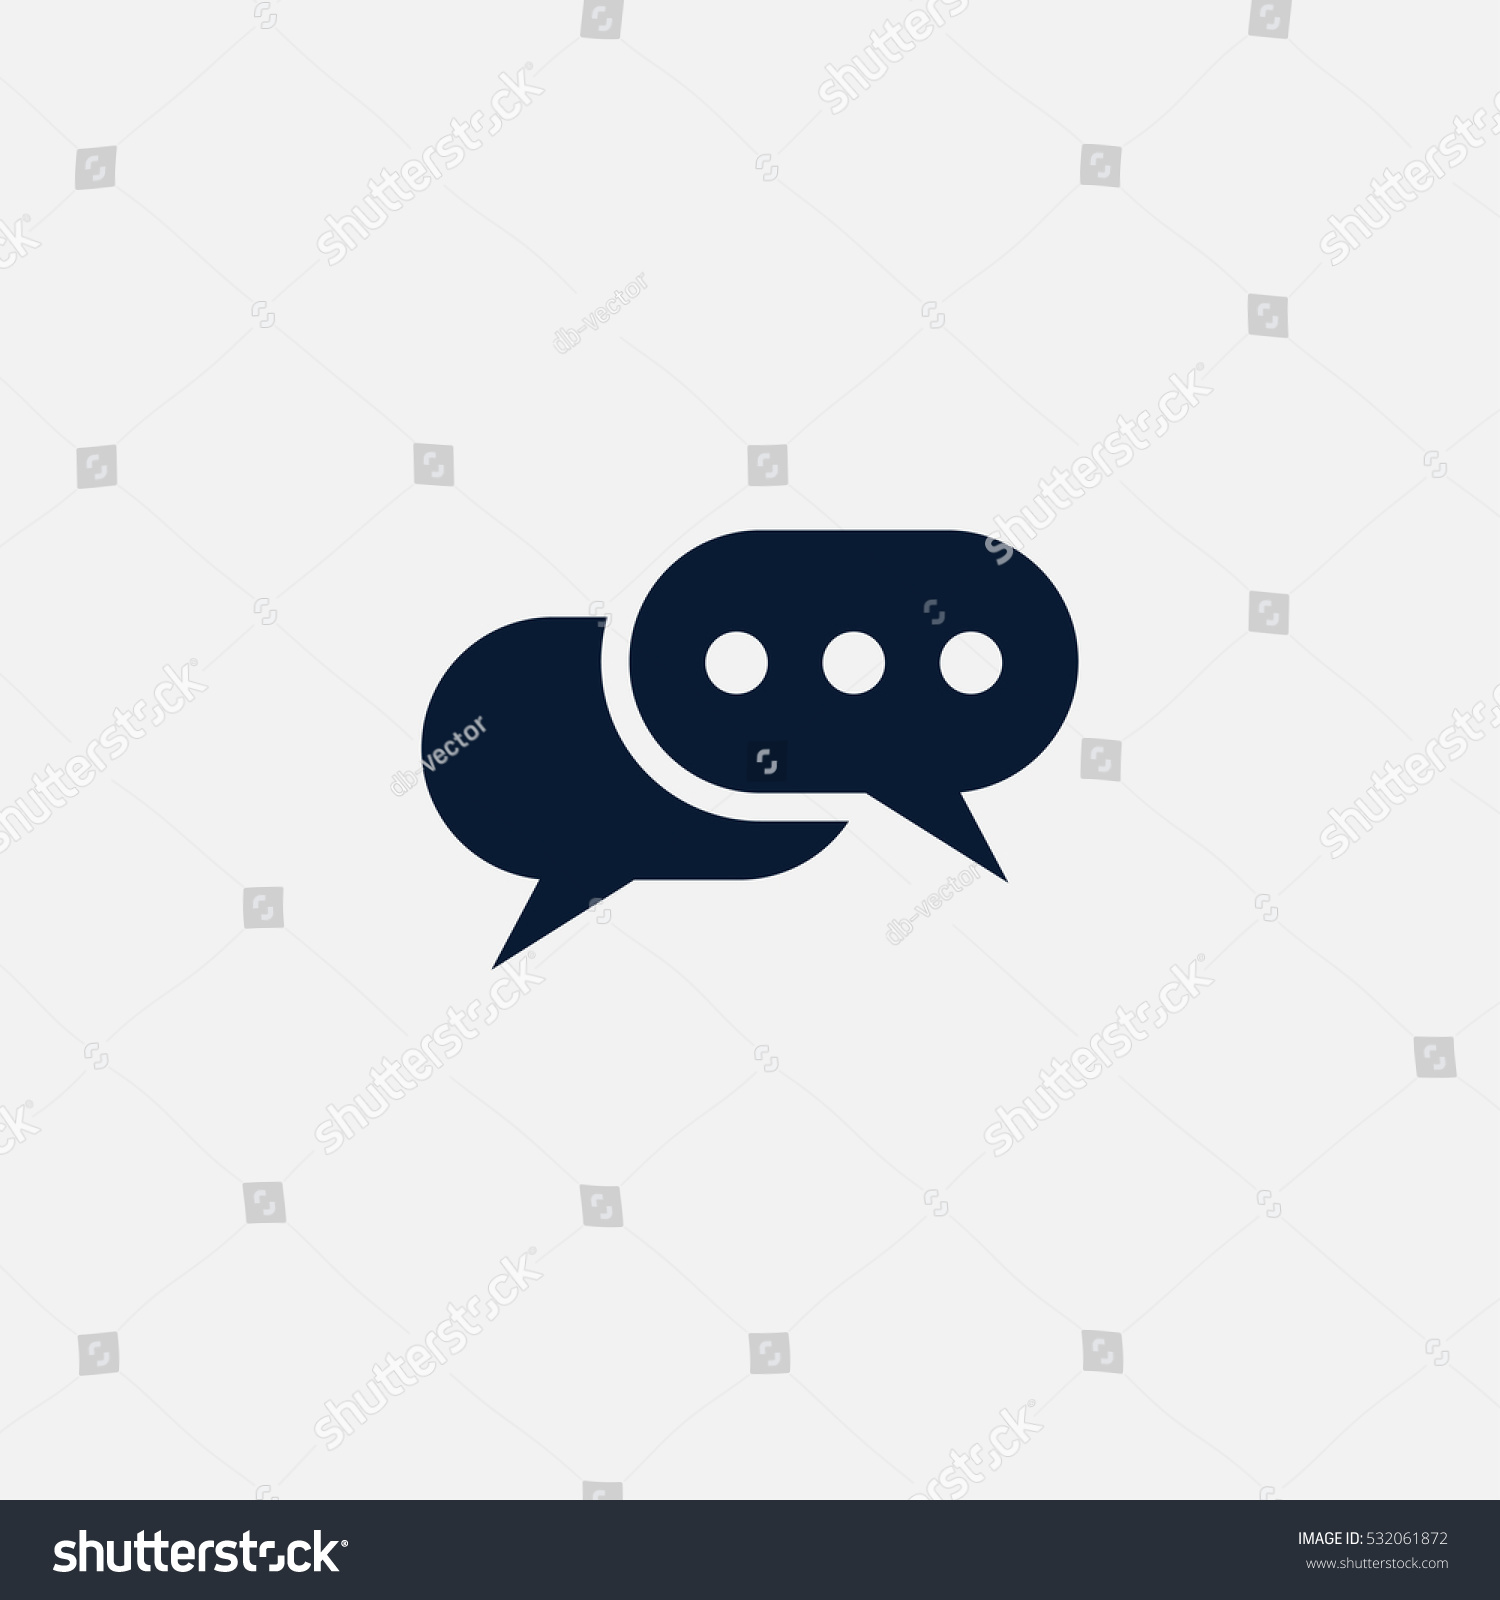 Gratis Juridisch Advies Chat Chat Icon Simple Communication Sign Vector Stockvector